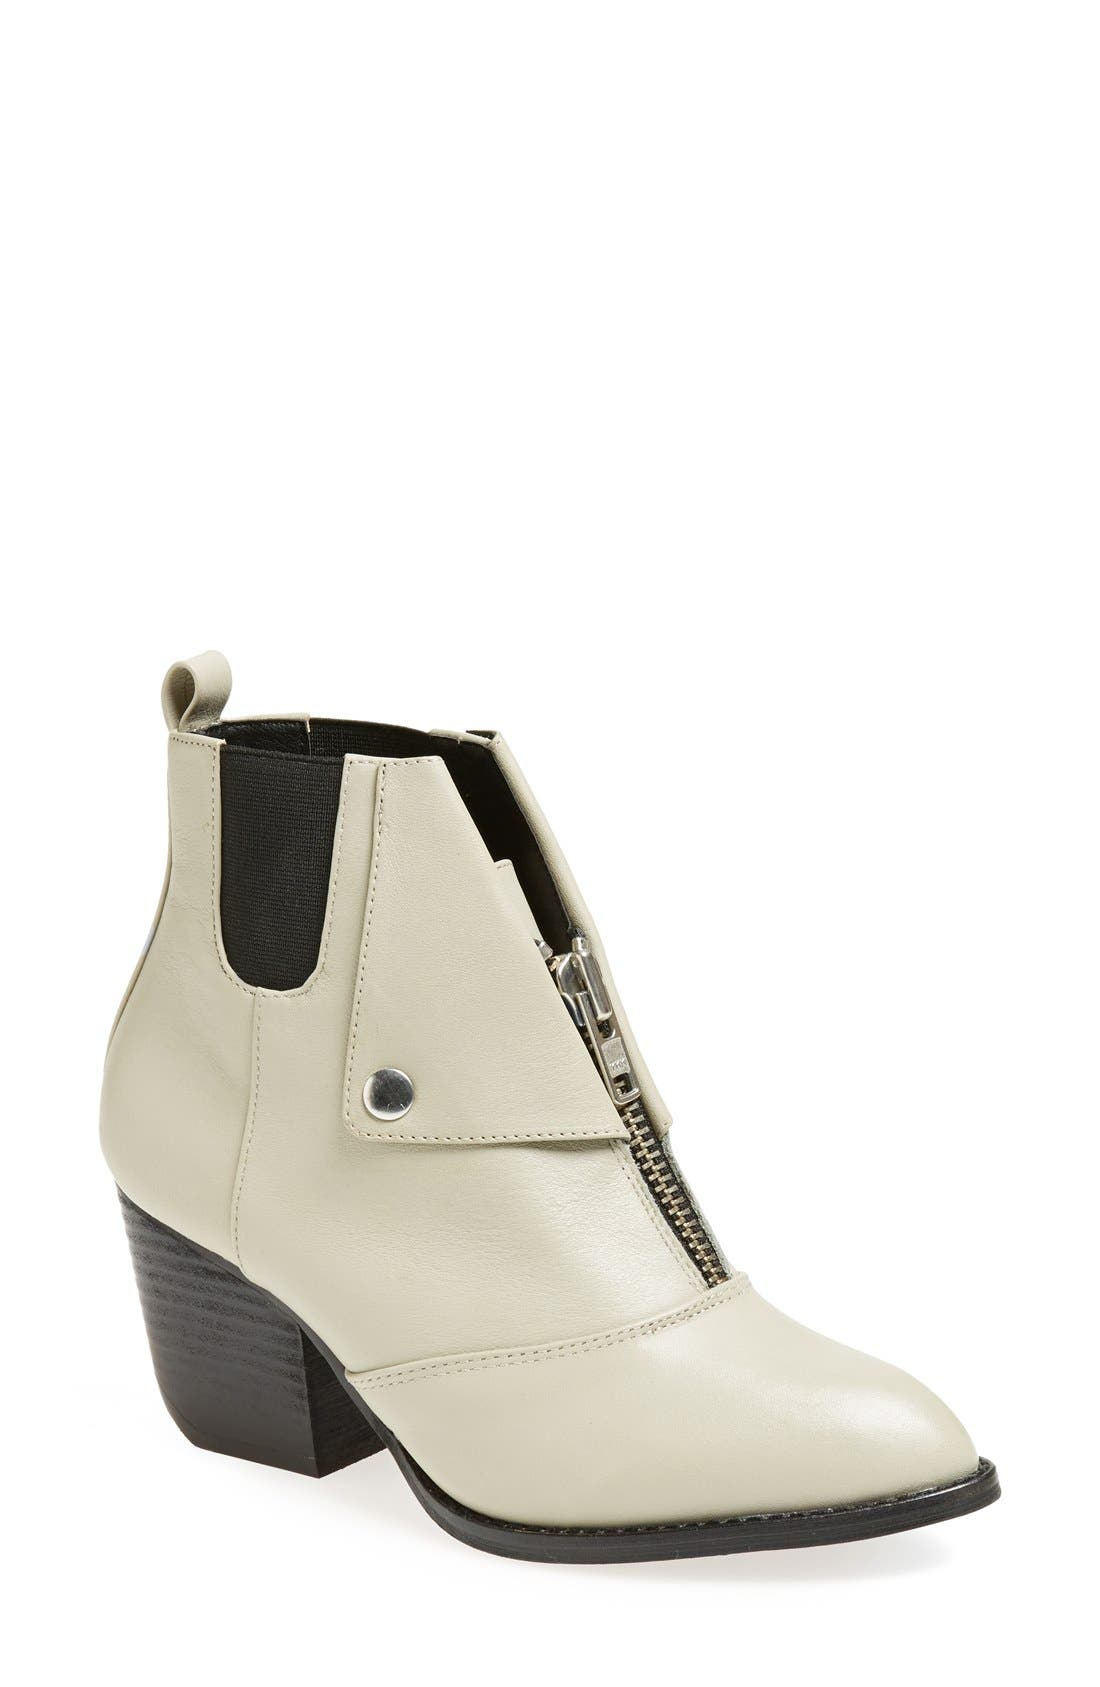 Alternate Image 1 Selected - Shellys London 'Scalone' Pointy Toe Bootie (Women)